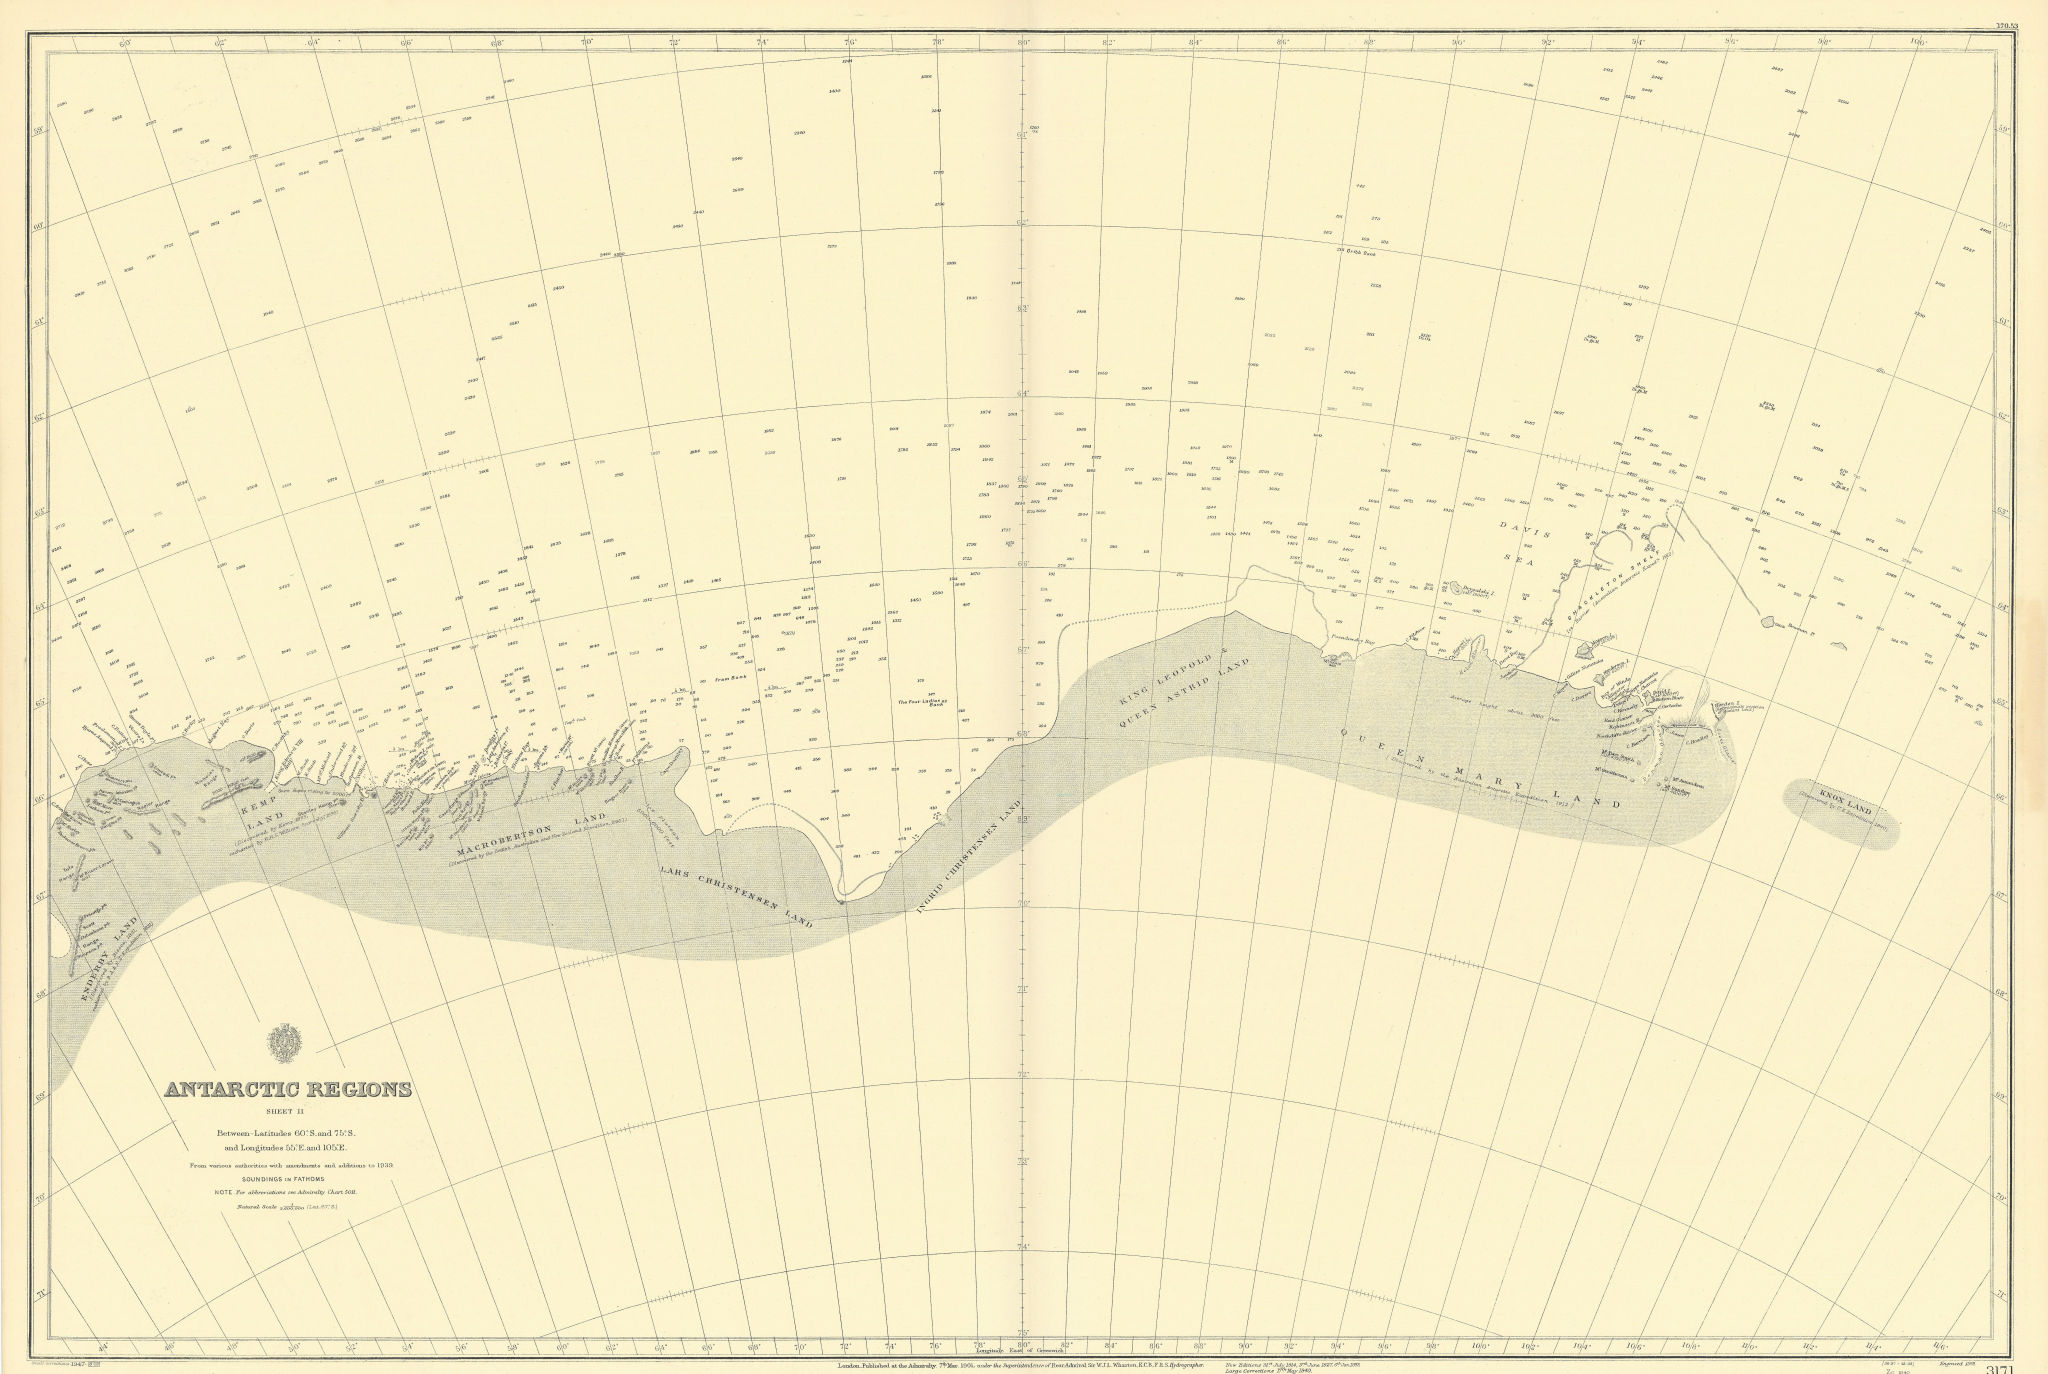 Antarctica 60-75S 55-105E Knox Kemp Enderby Land ADMIRALTY chart 1901 (1947) map